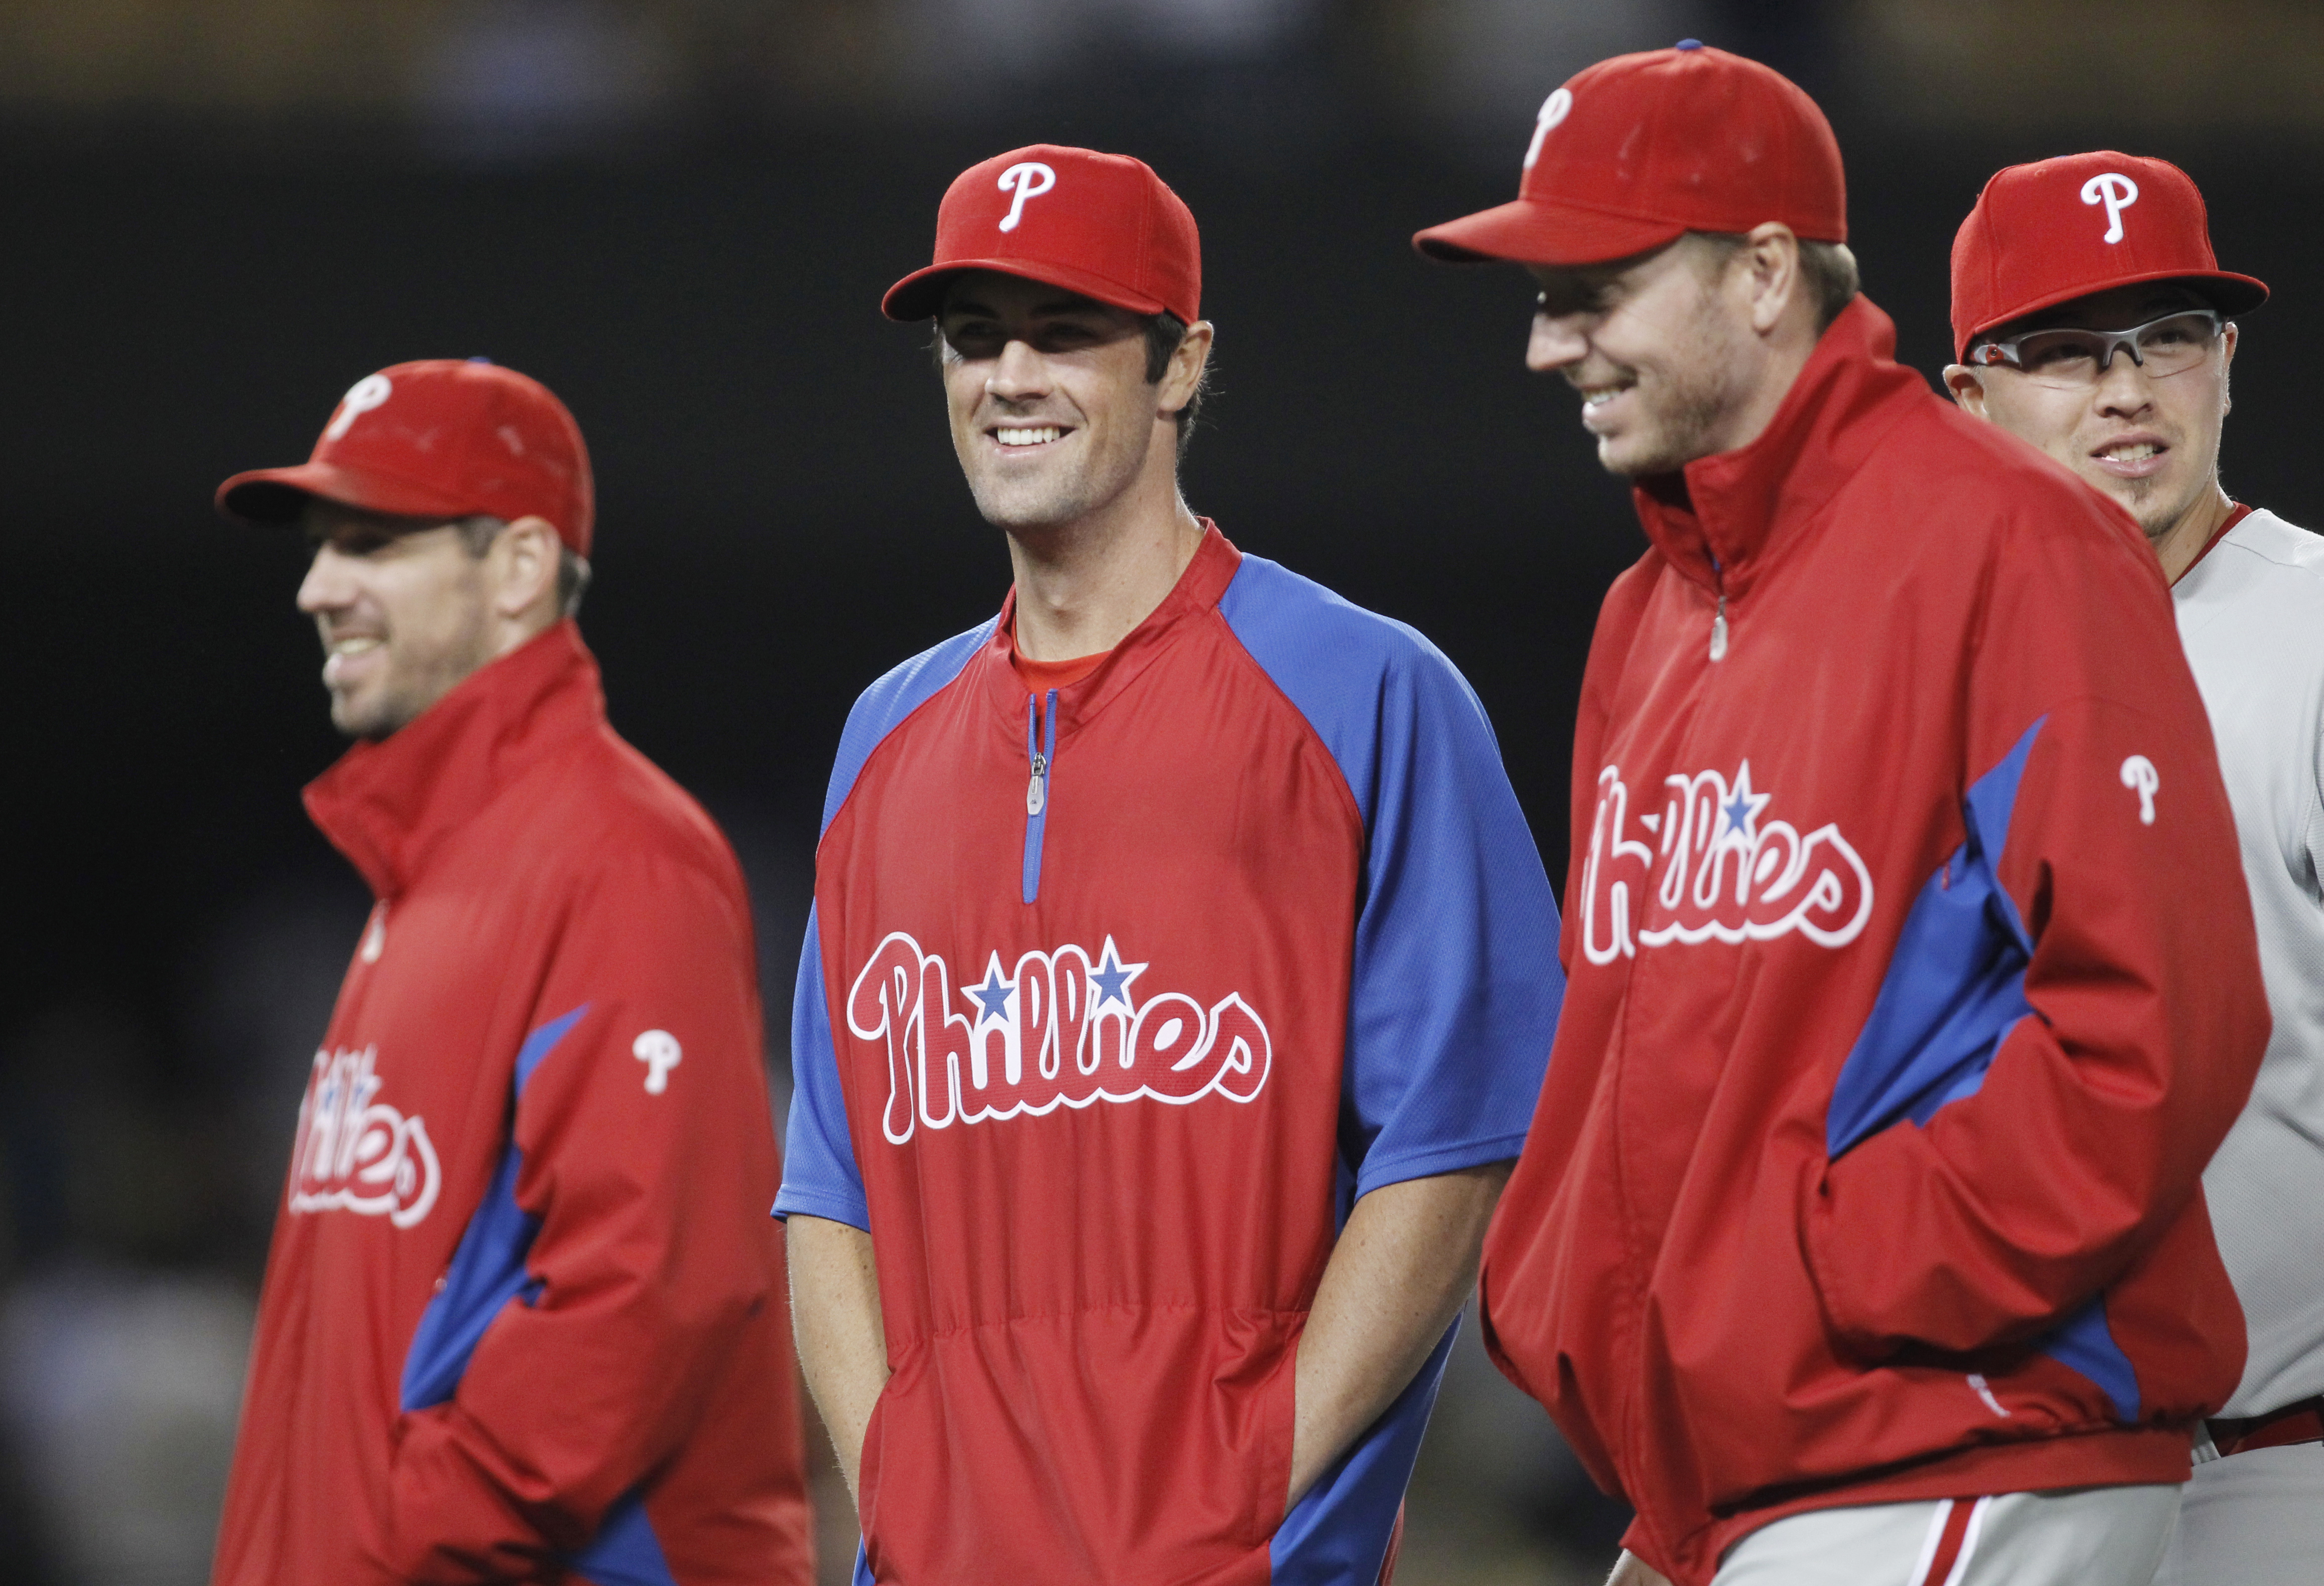 <div class='meta'><div class='origin-logo' data-origin='none'></div><span class='caption-text' data-credit=''>Roy Halladay with fellow Phillies pitching stars Cole Hamels and Cliff Lee.</span></div>